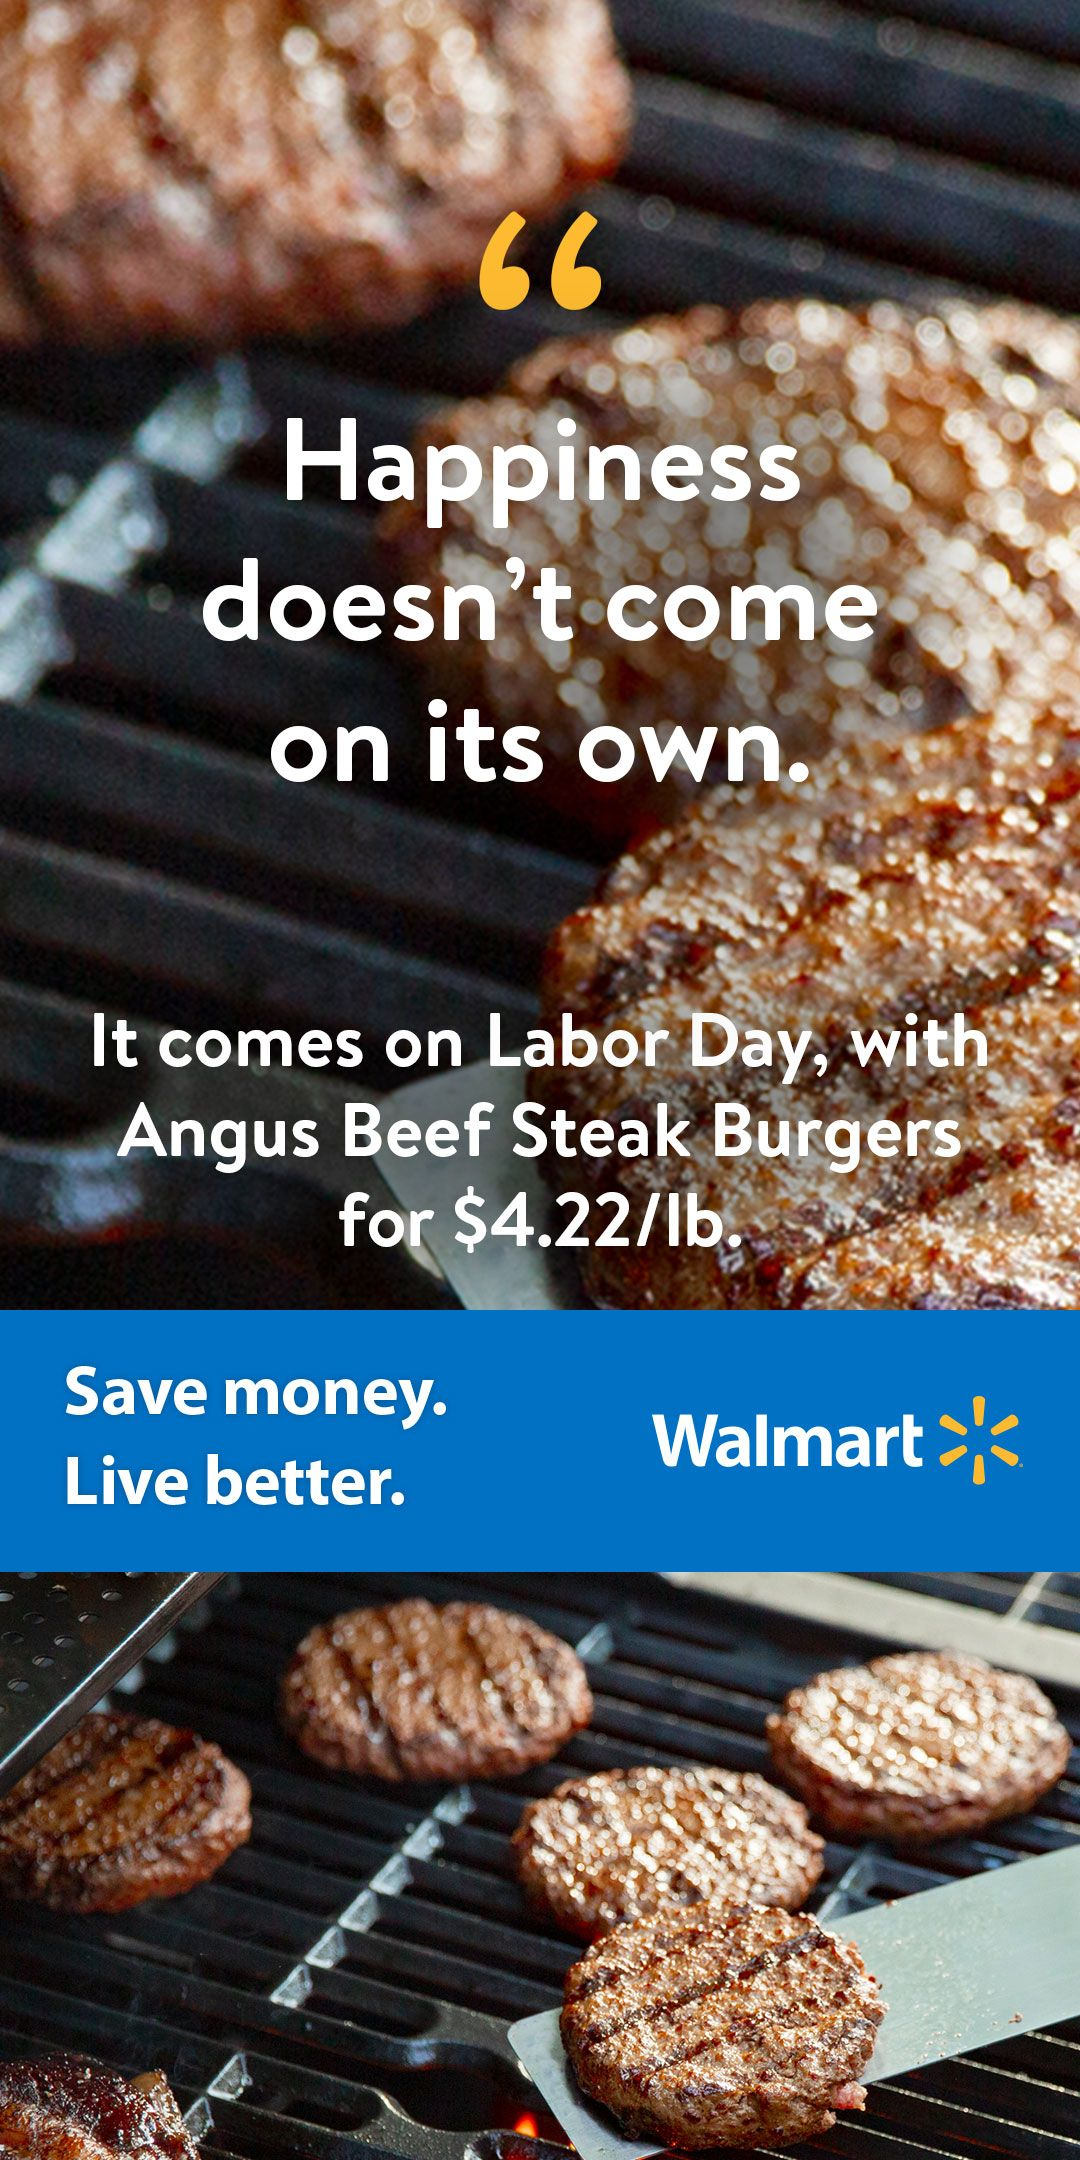 Walmart's Grocery Pickup & Delivery gets you a great price